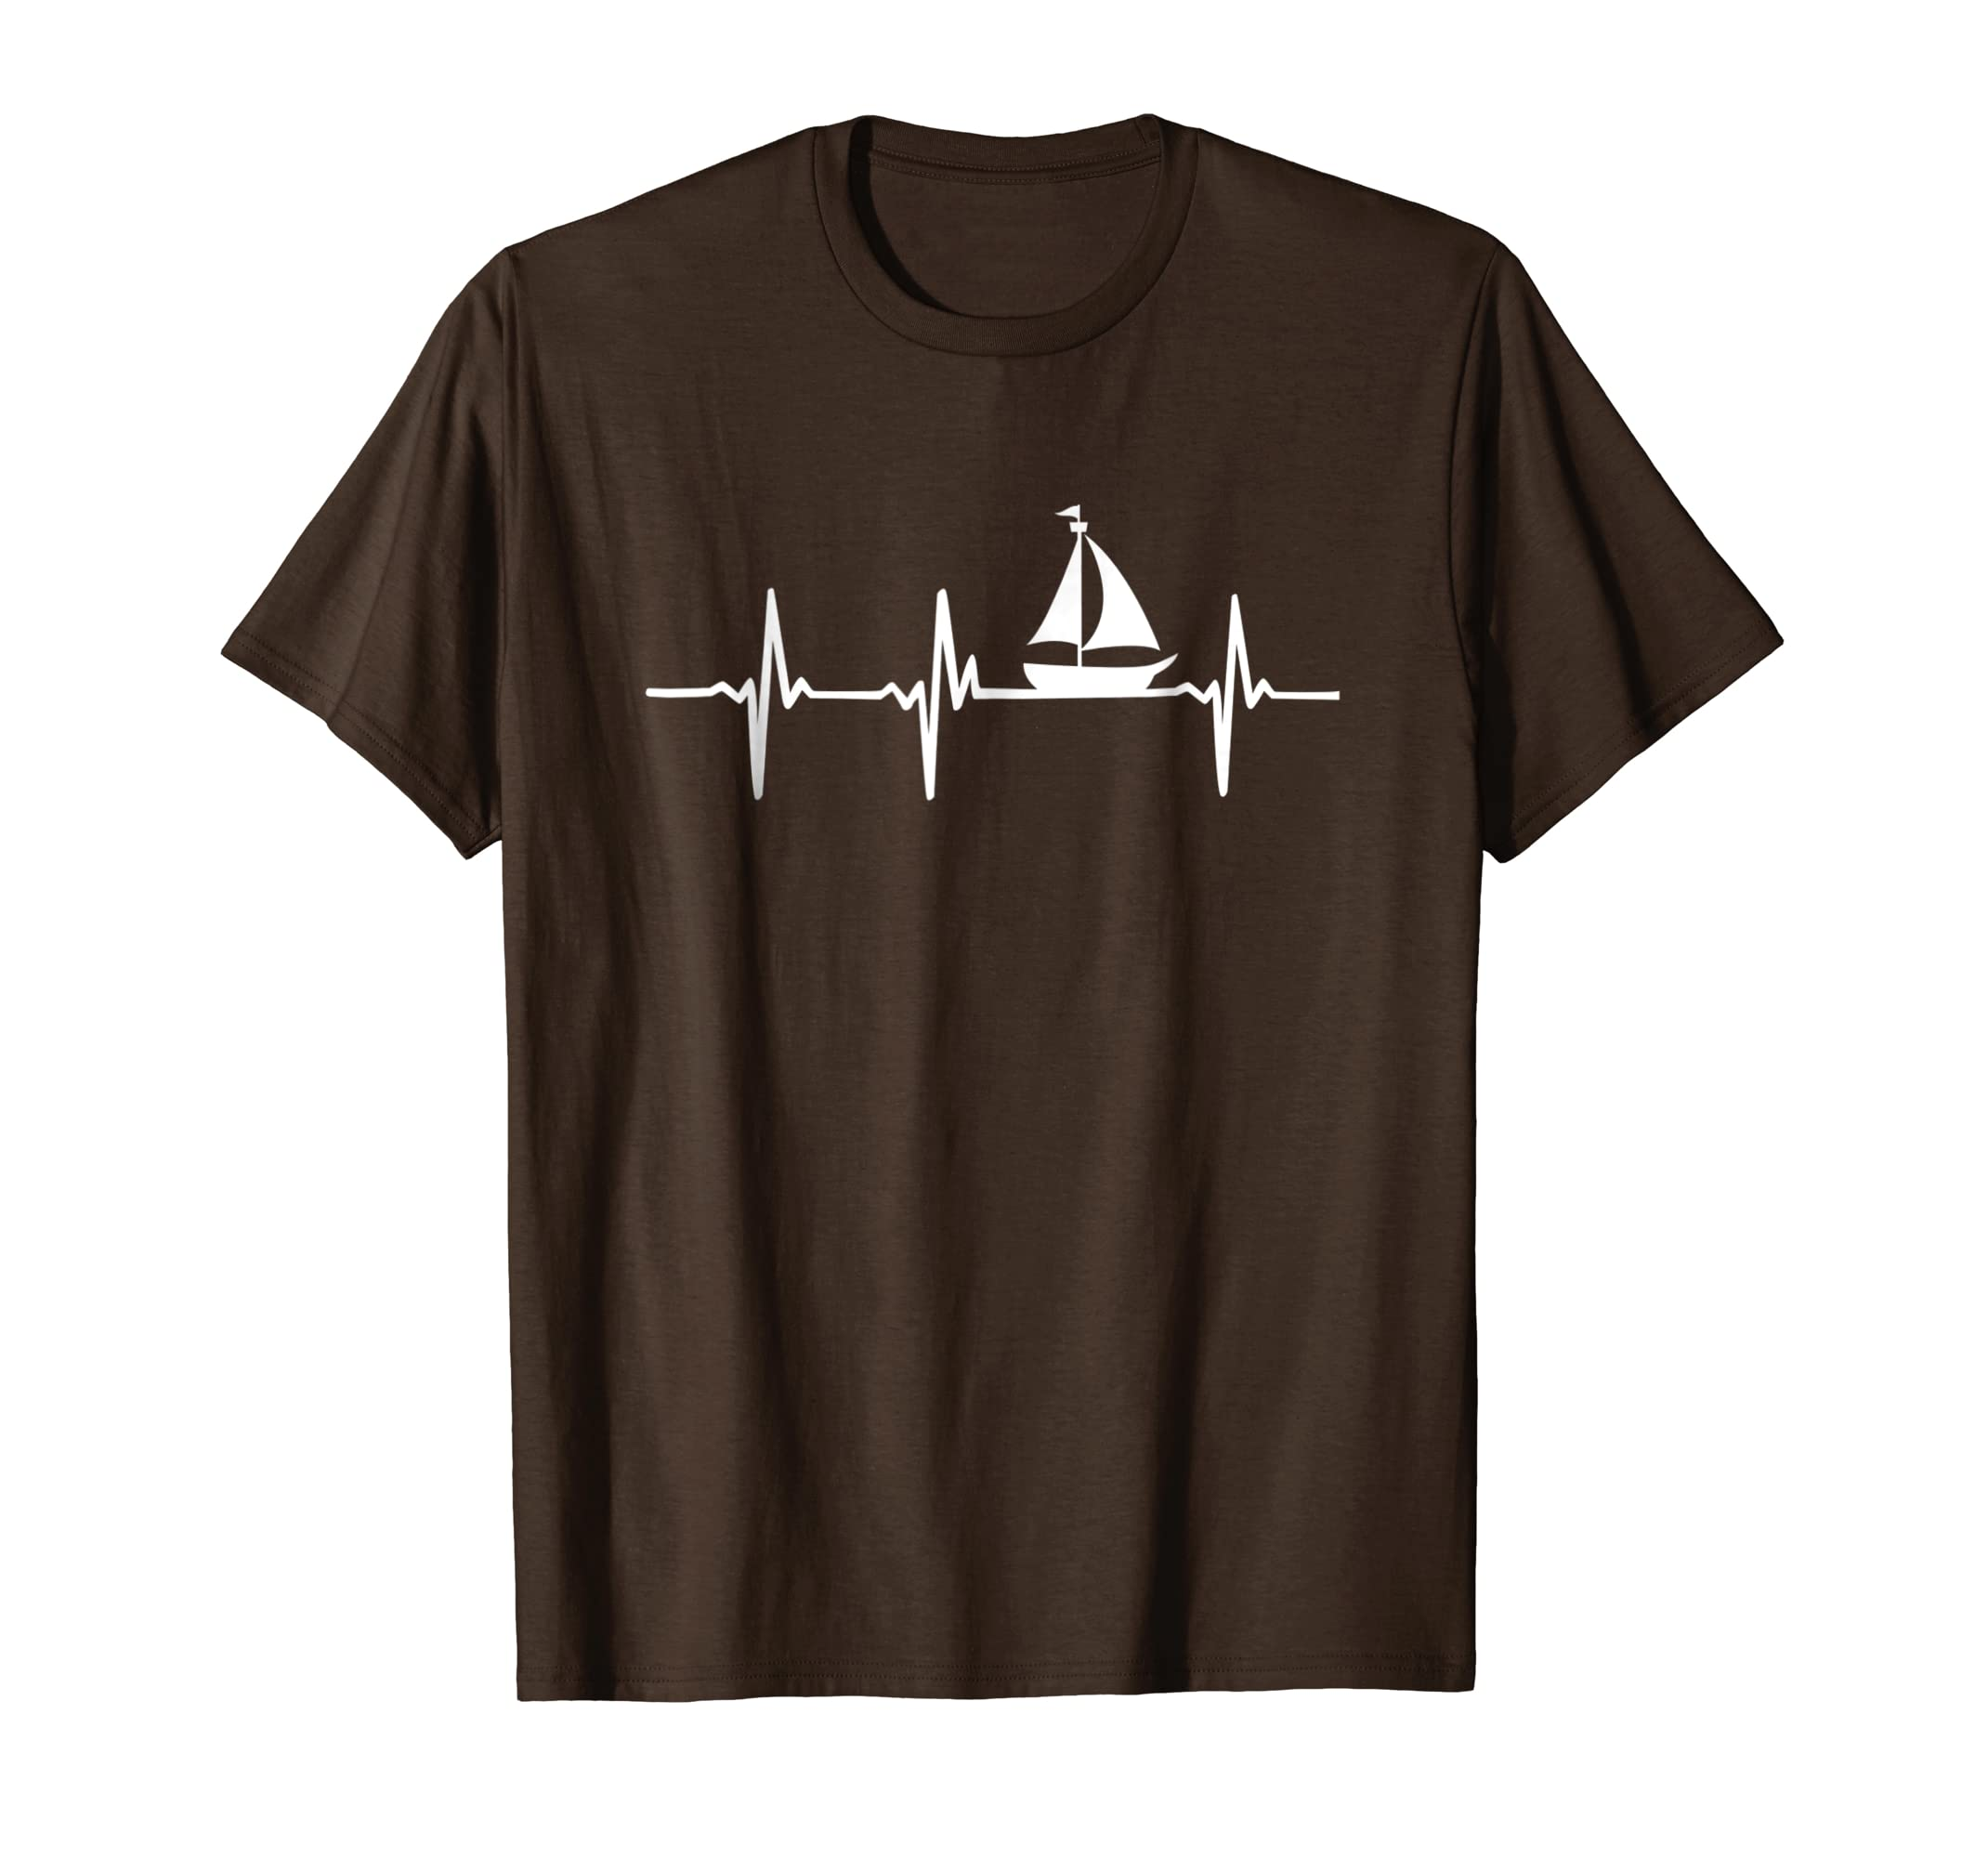 Heartbeat Sailing T-Shirt For Sailors With Sailboat-Yolotee